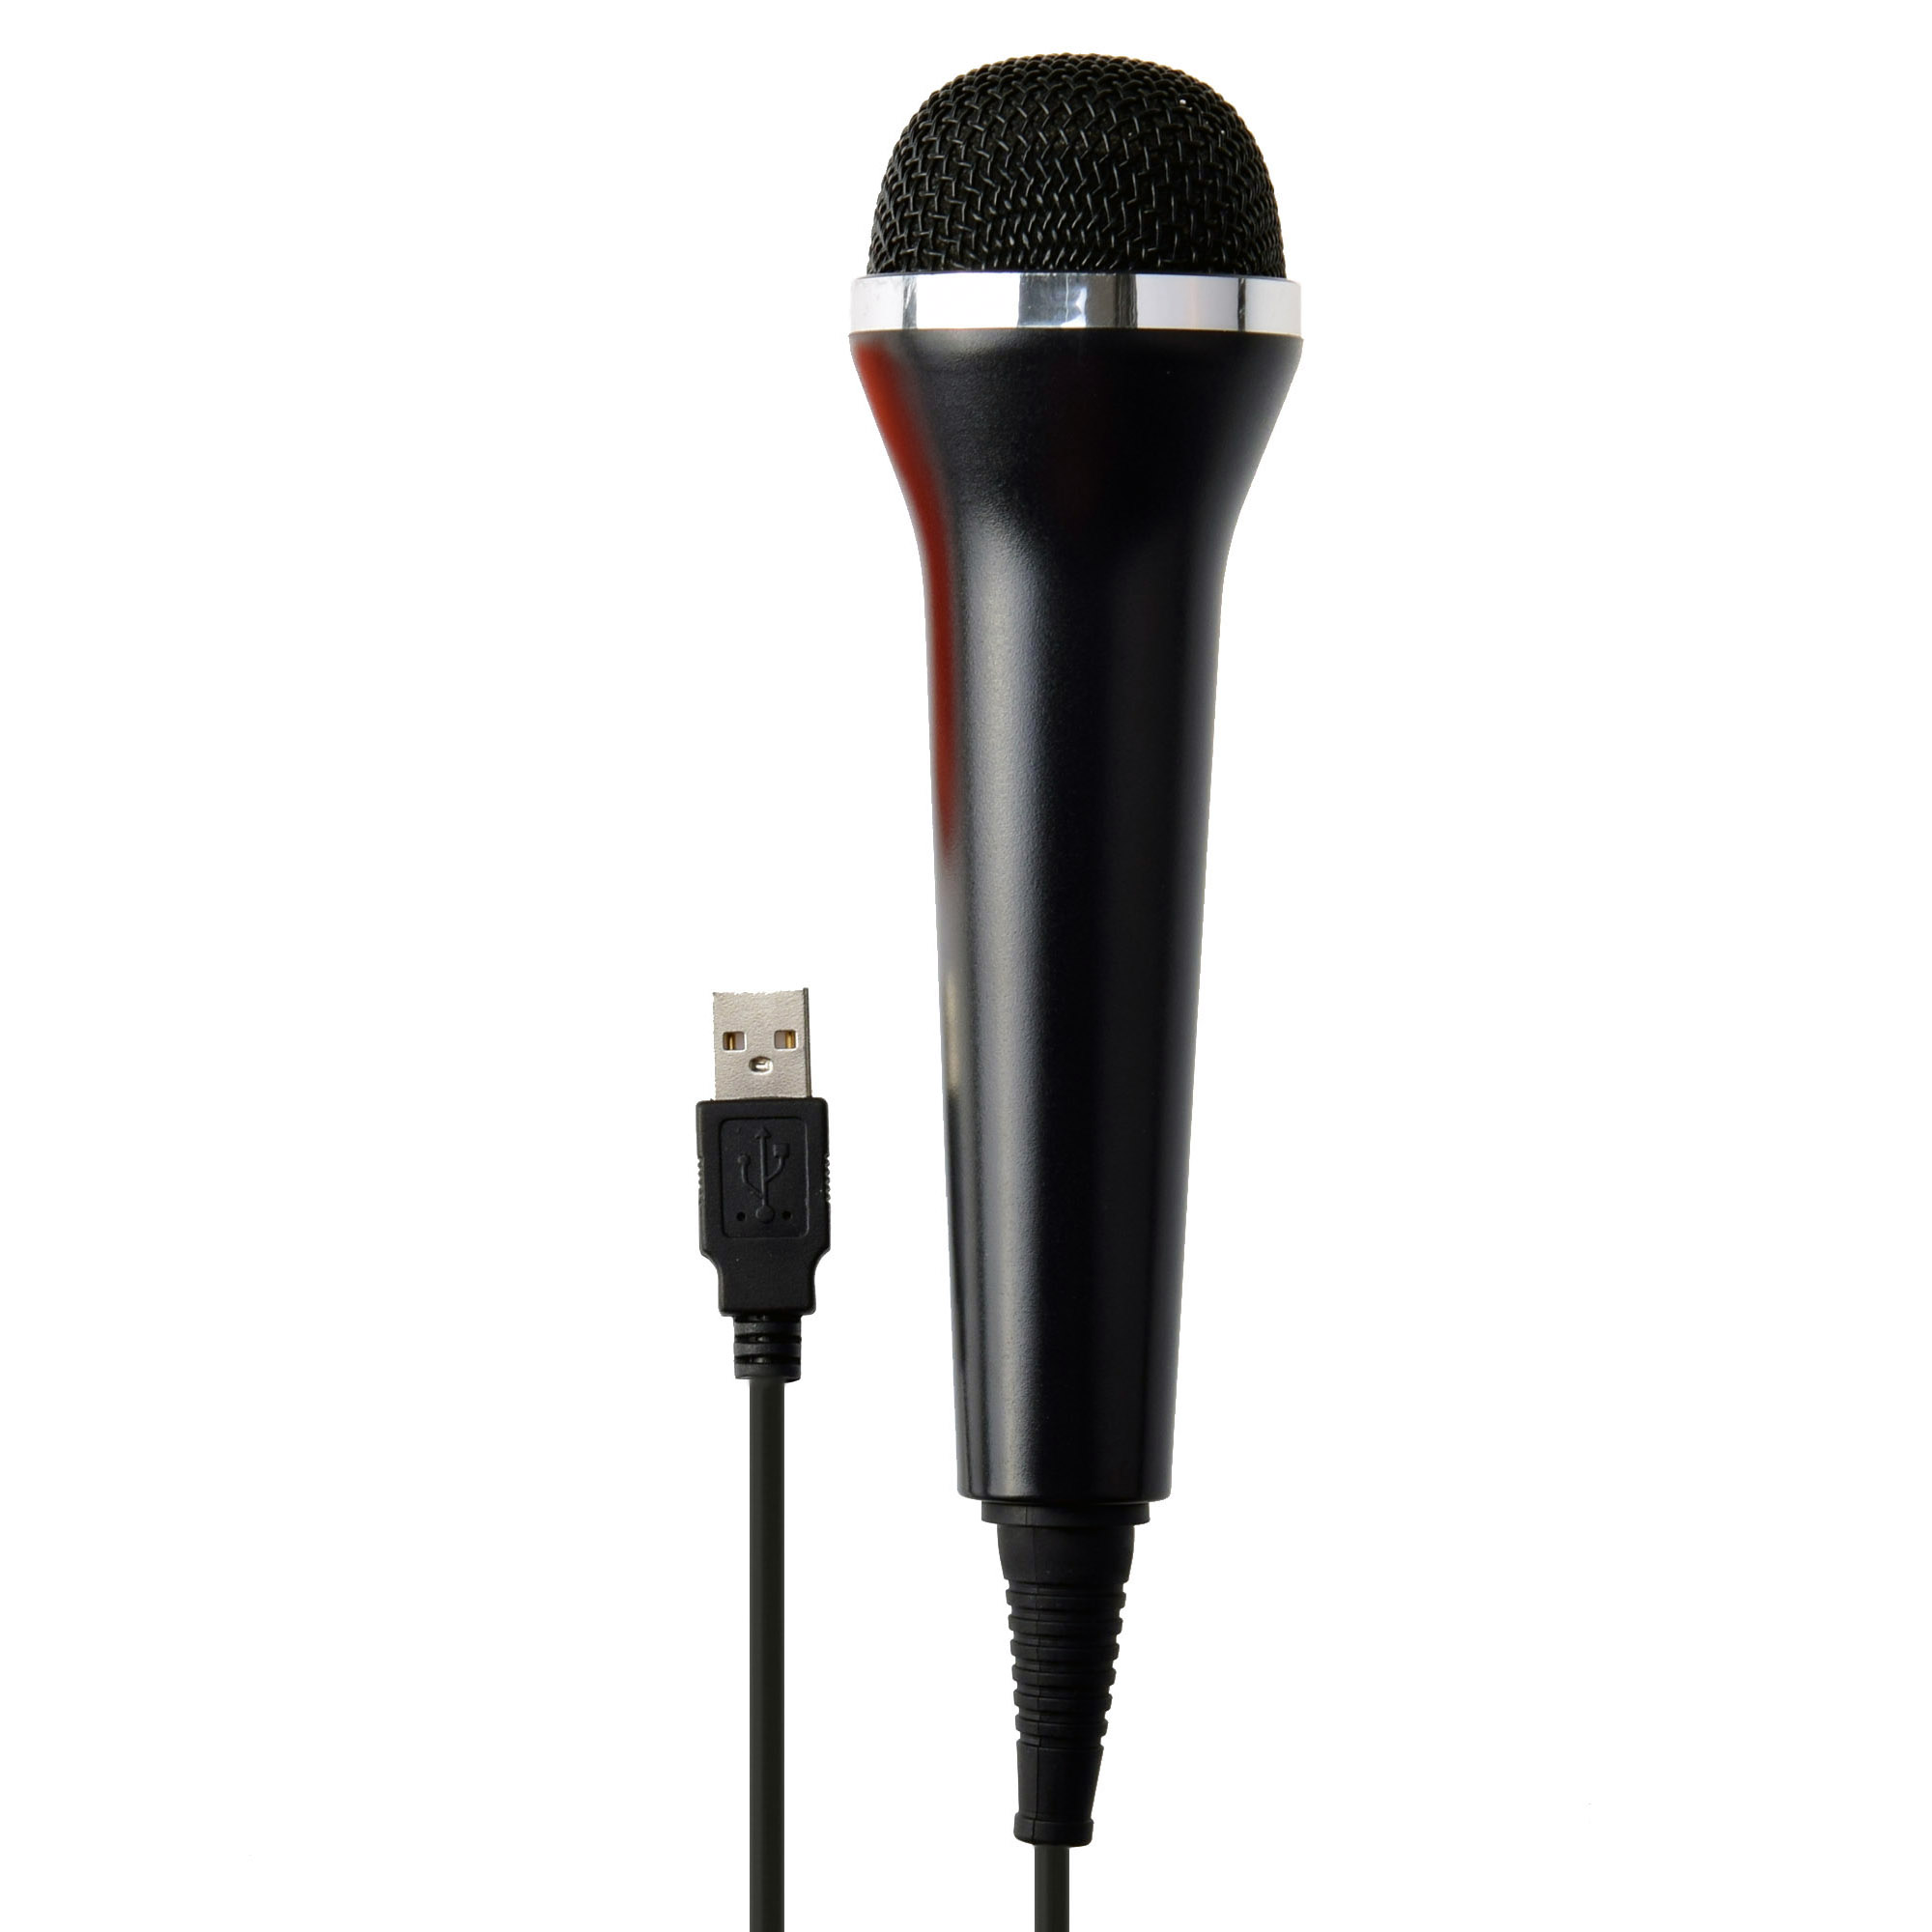 universal usb audio wired karaoke micrphone mic for ps4 slim pro ps3 xbox one s xbox 360 wii pc. Black Bedroom Furniture Sets. Home Design Ideas